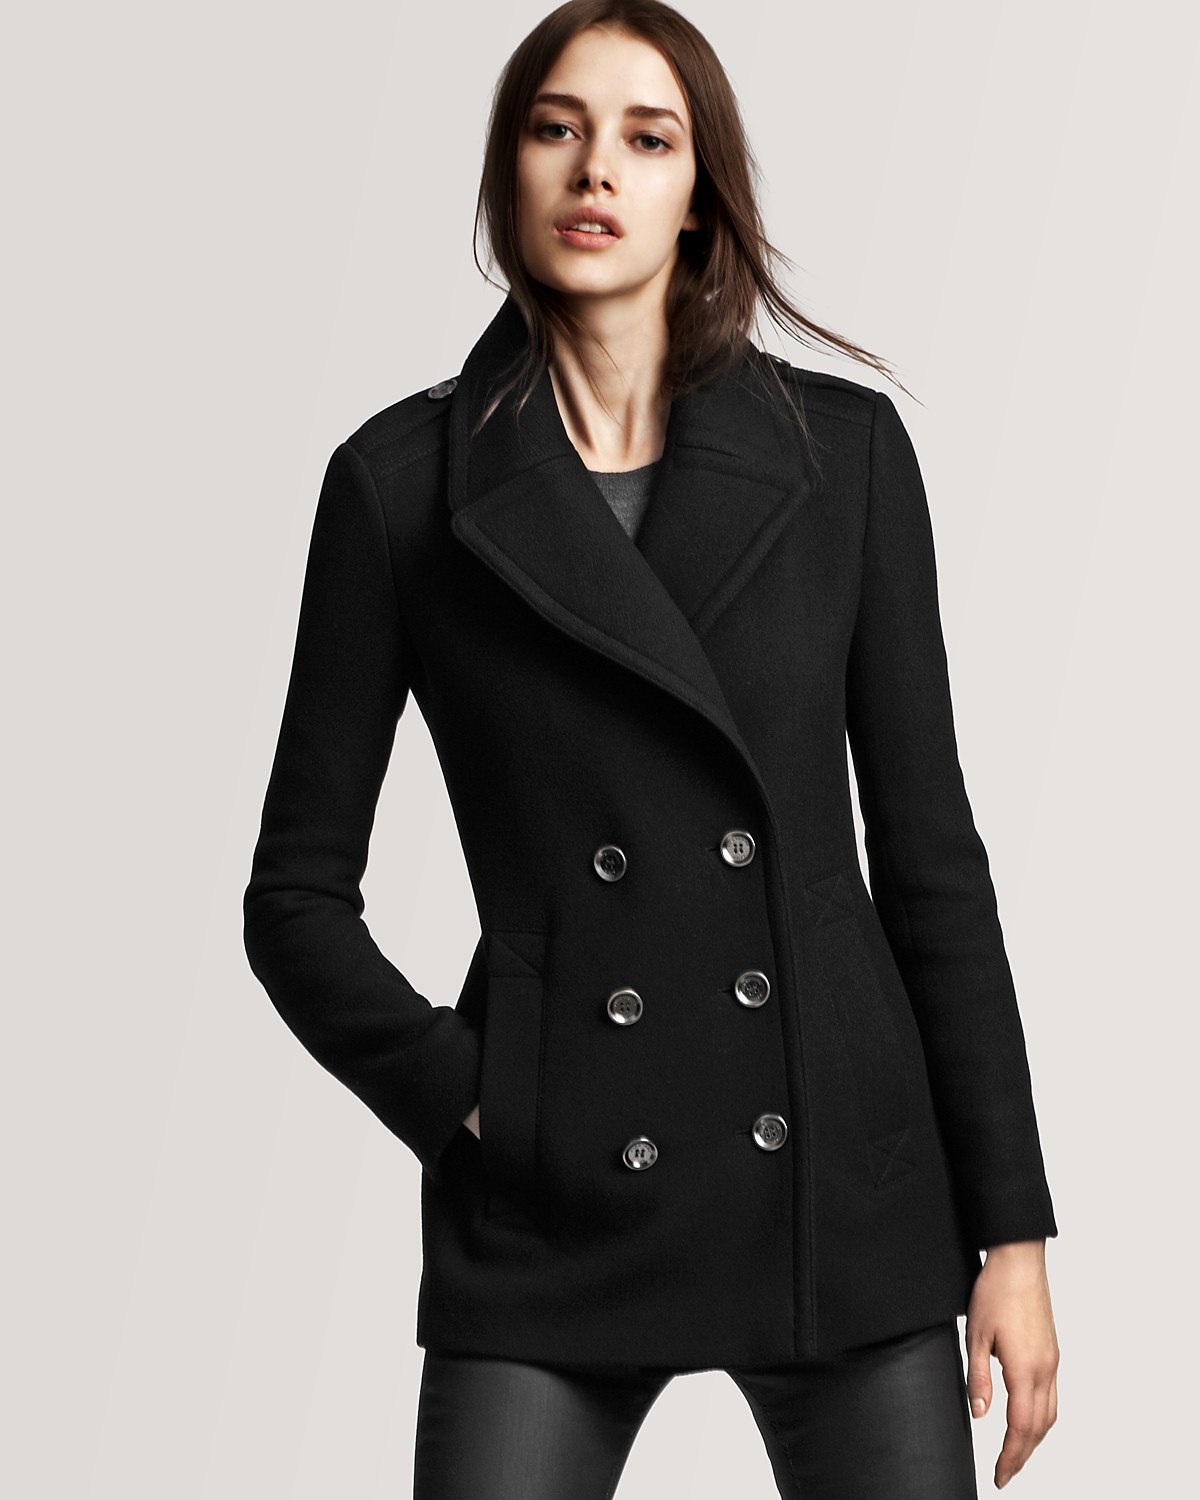 Shop the latest styles of Womens Peacoat Coats at Macys. Check out our designer collection of chic coats including peacoats, trench coats, puffer coats and more!